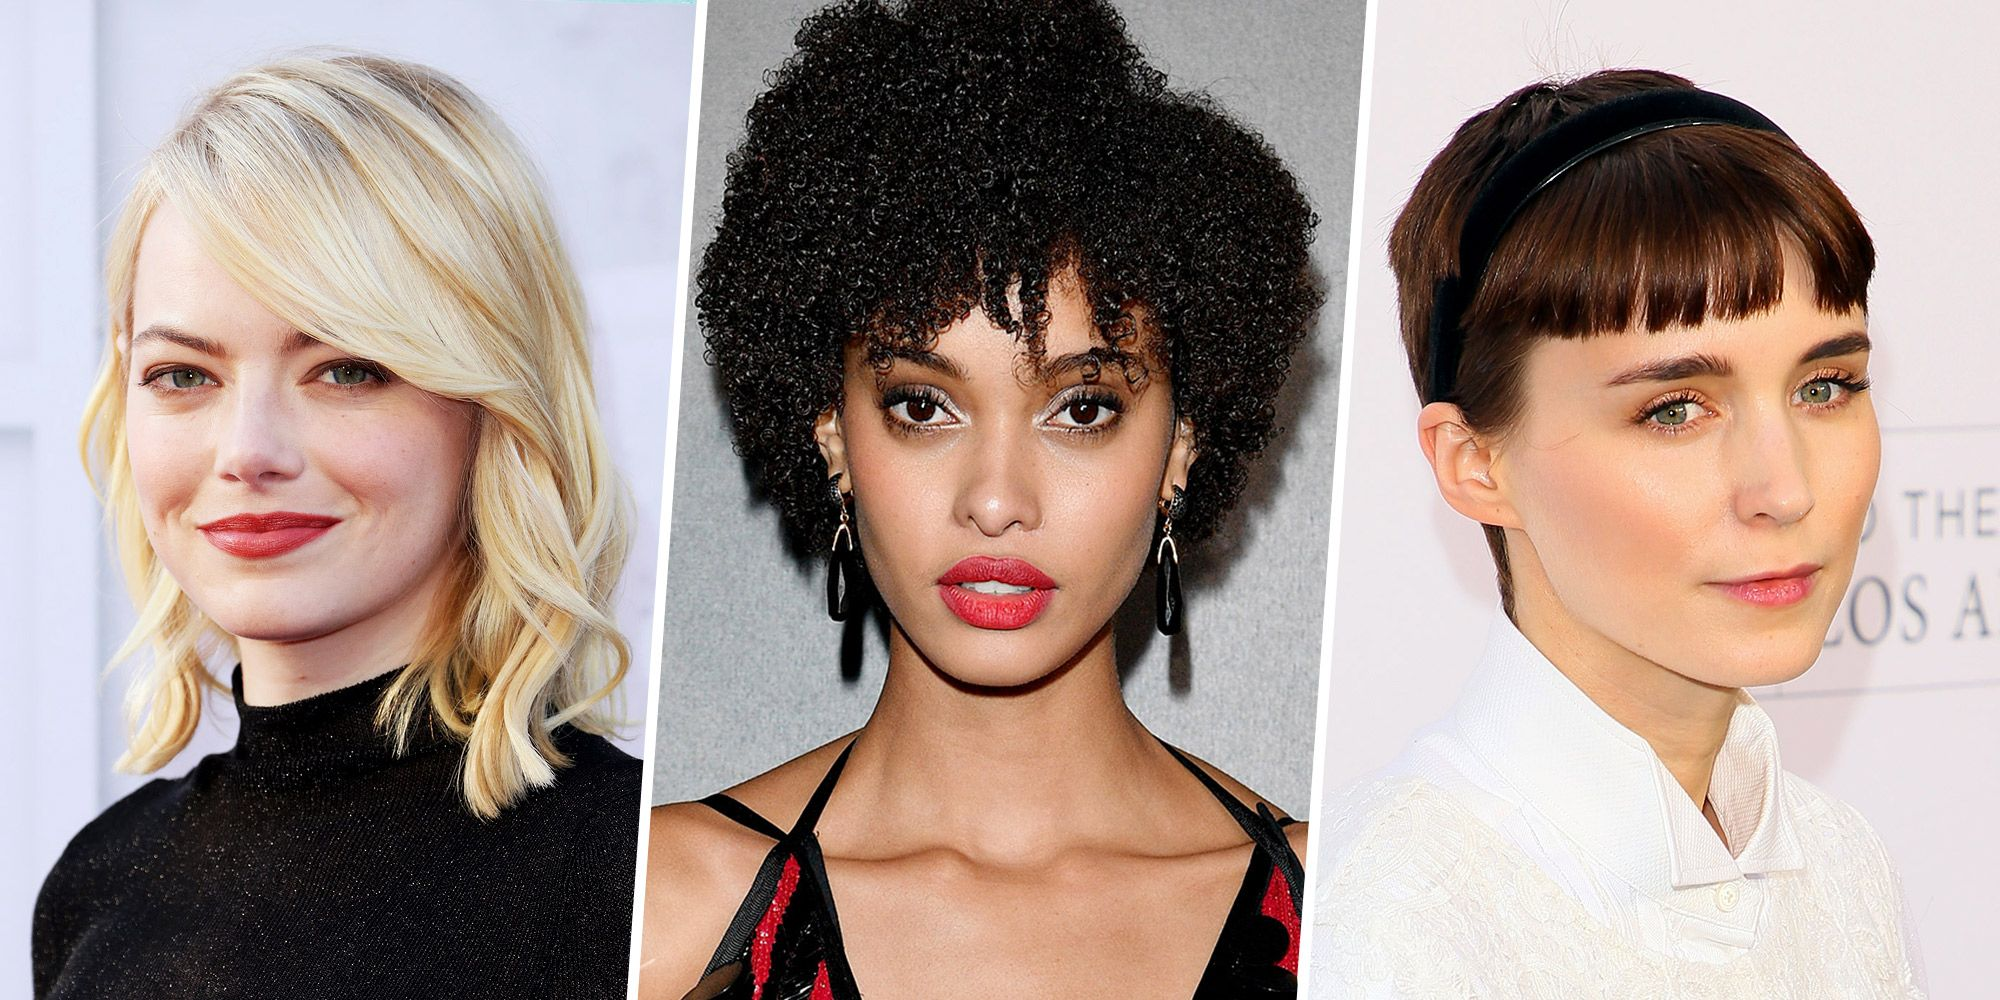 13 Best Short Hairstyles, Haircuts, and Short Hair Ideas for 13